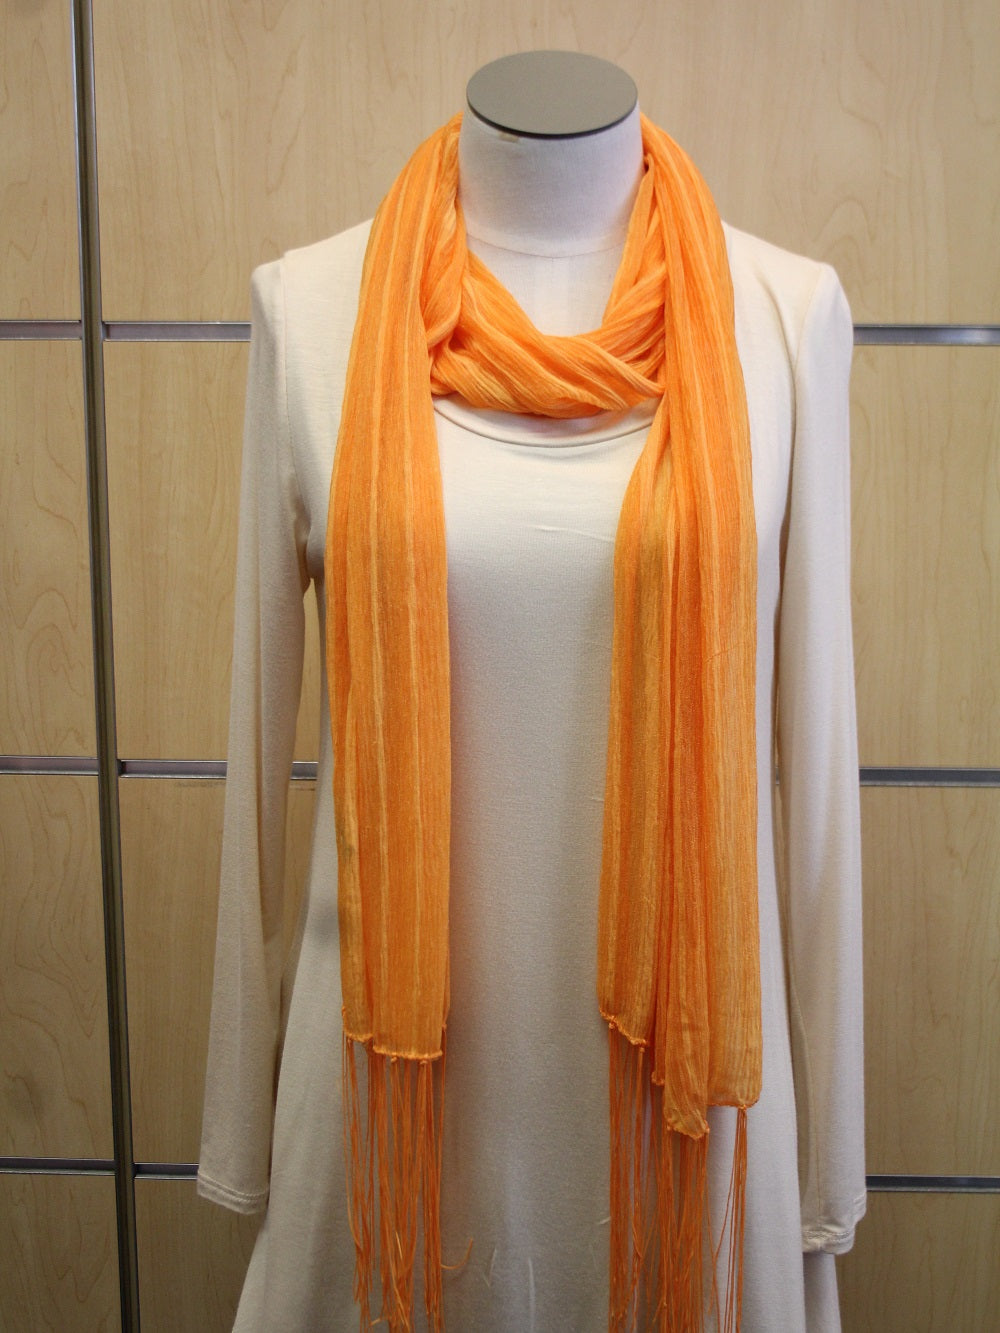 ADO | Wrap Bright Orange Scarf